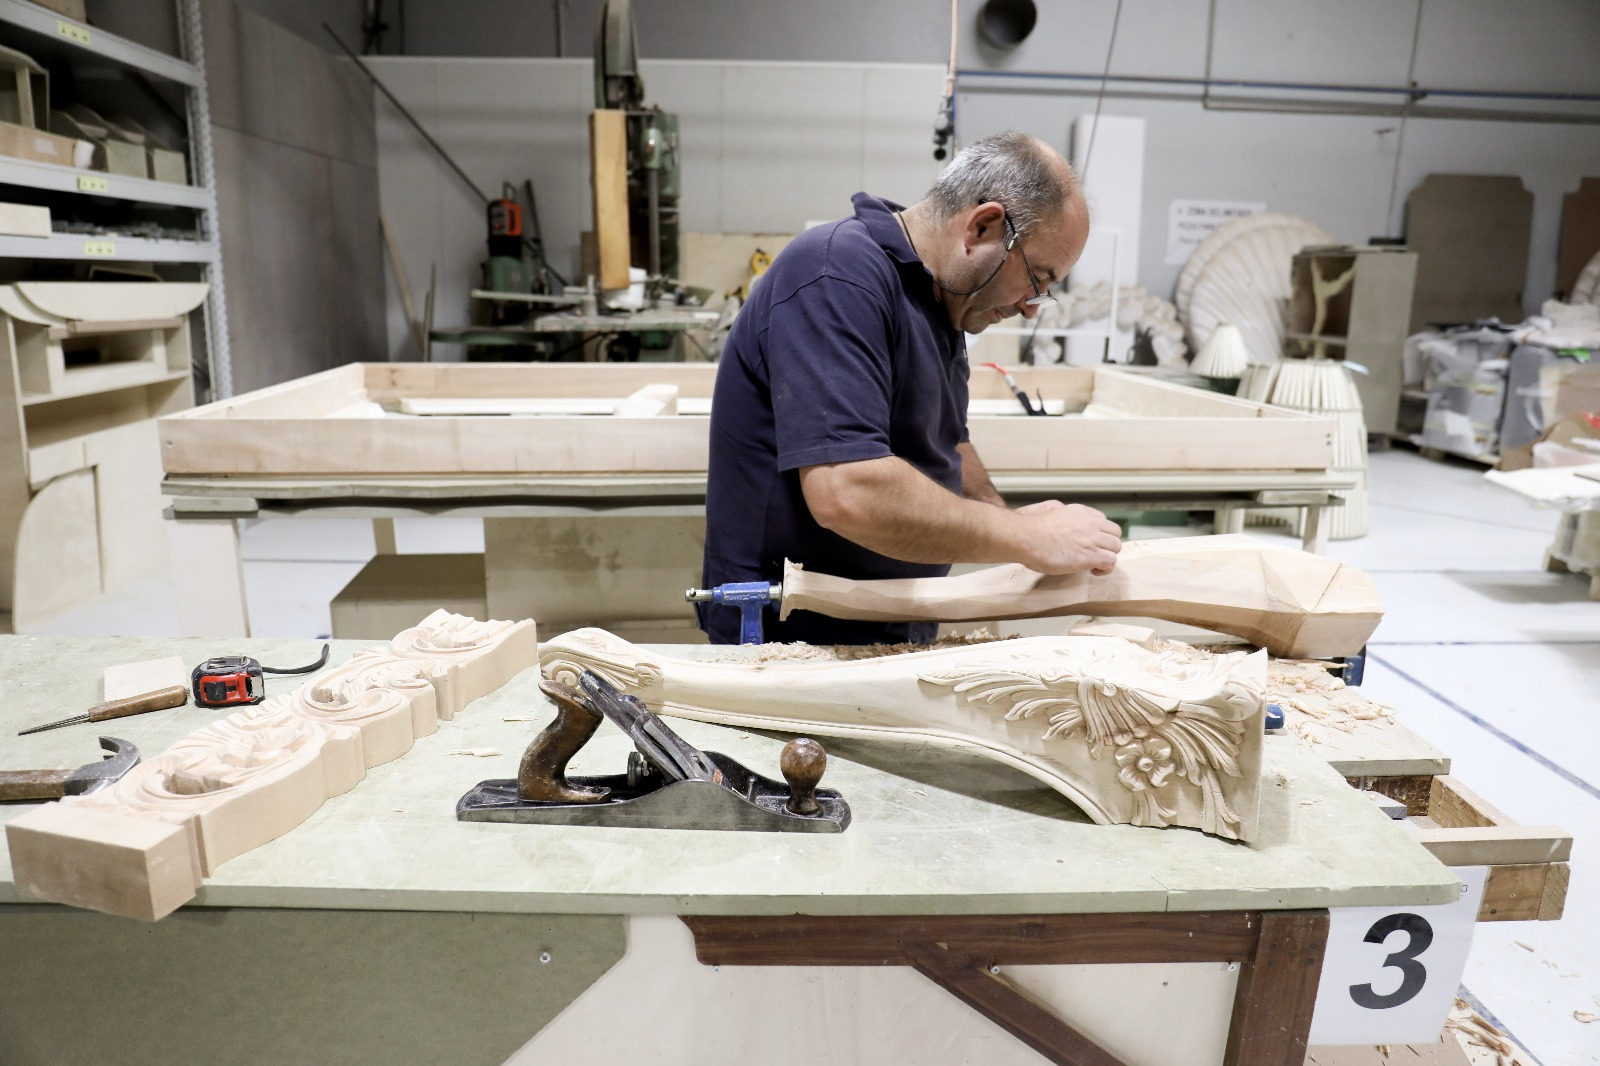 Craftsmanship: Covet Foundation in European Artistic Craft Days 2019 - Wood Carving craftsmanship Craftsmanship: Covet Foundation in European Artistic Craft Days 2019 WhatsApp Image 2018 10 31 at 17